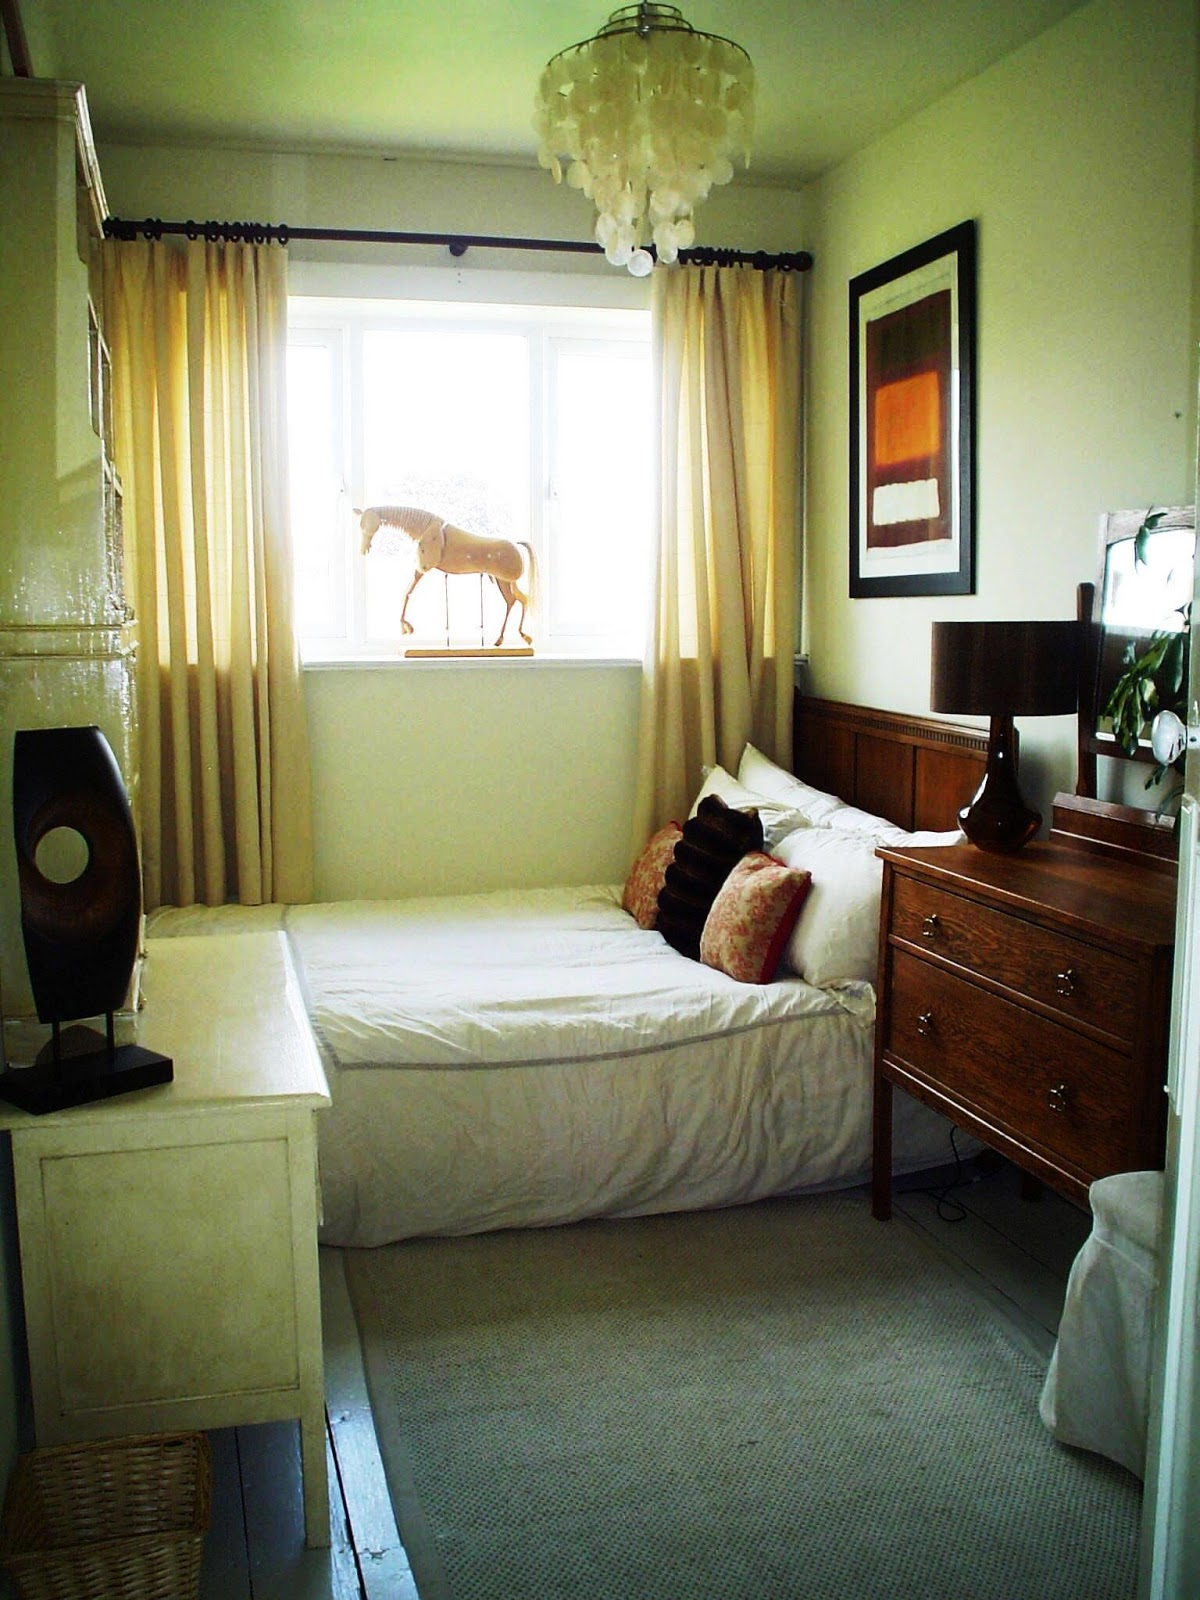 Bed Designs For Small Rooms small bedroom design photos - the interior designs